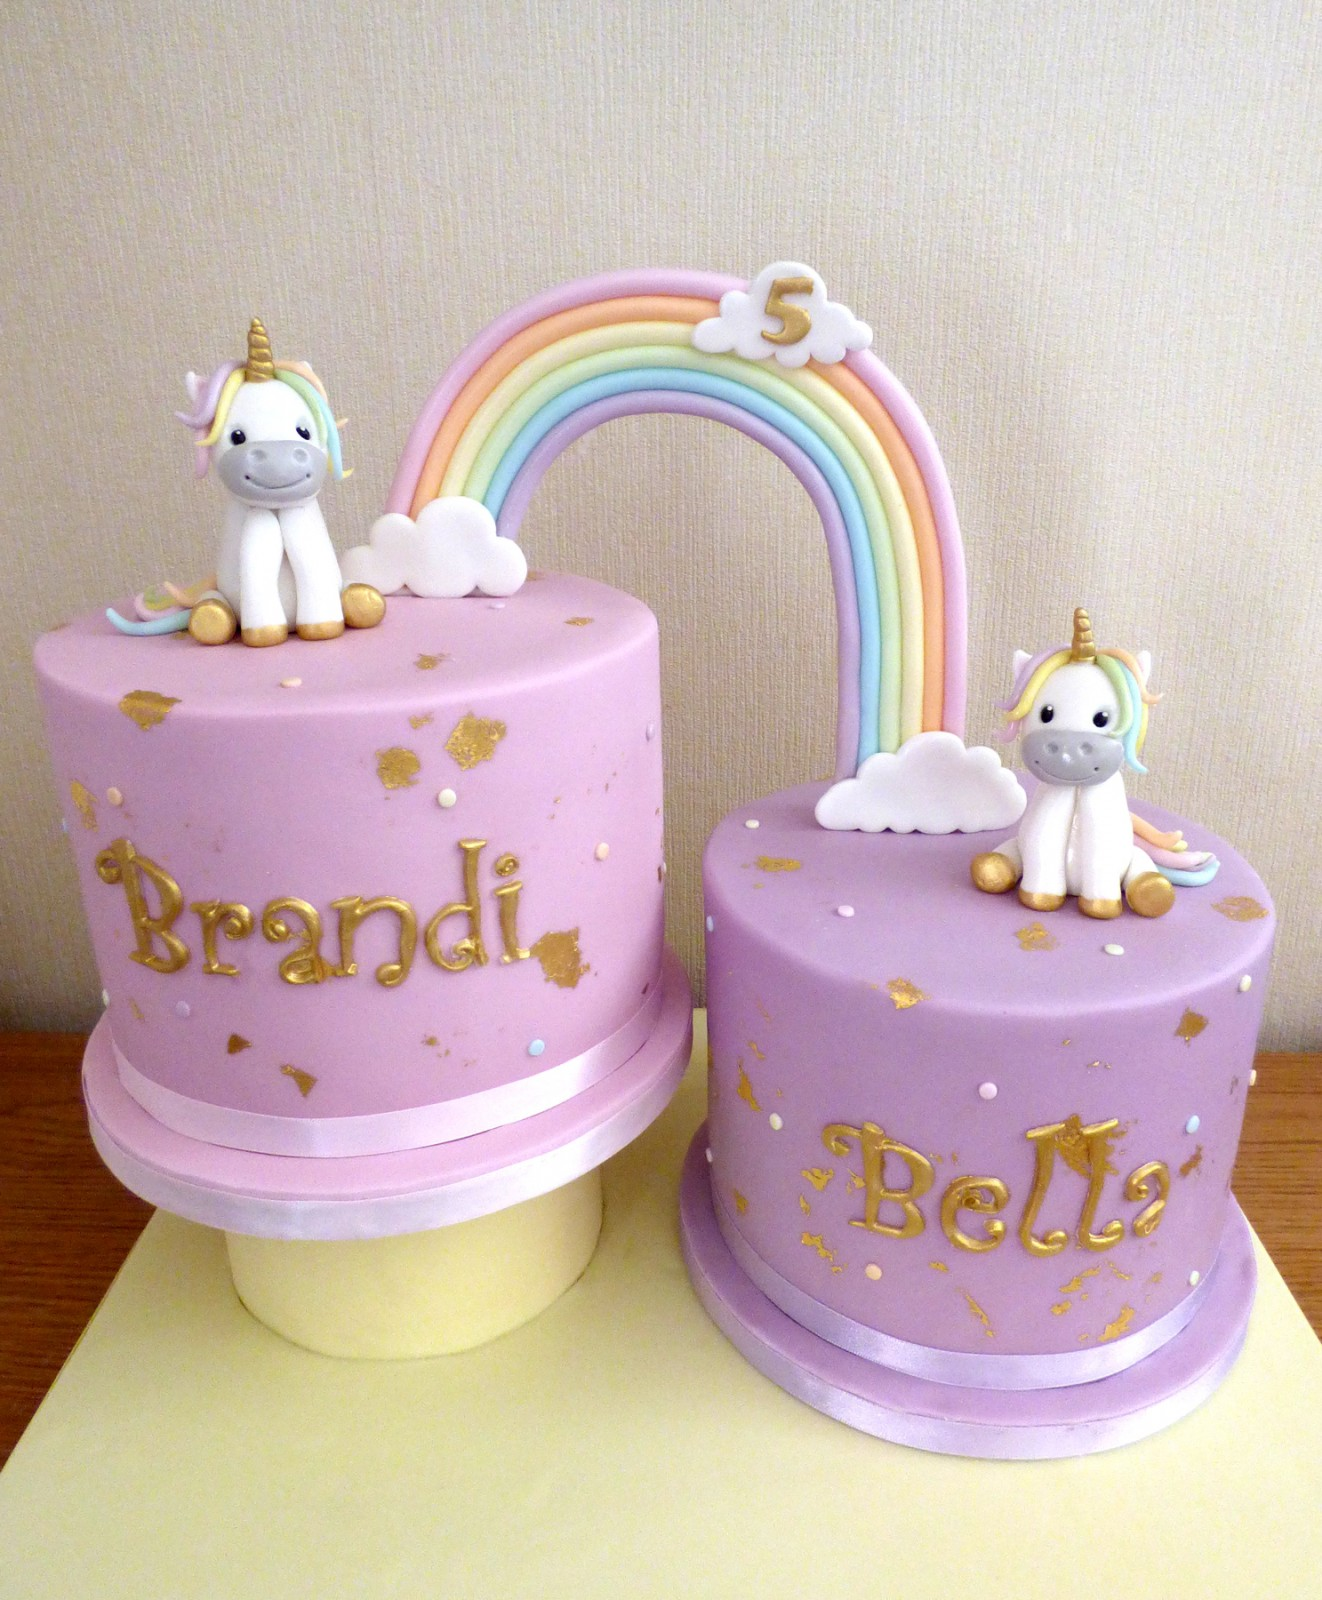 Super Rainbow Linked Unicorns Cakes For Twins Birthday Susies Cakes Personalised Birthday Cards Veneteletsinfo